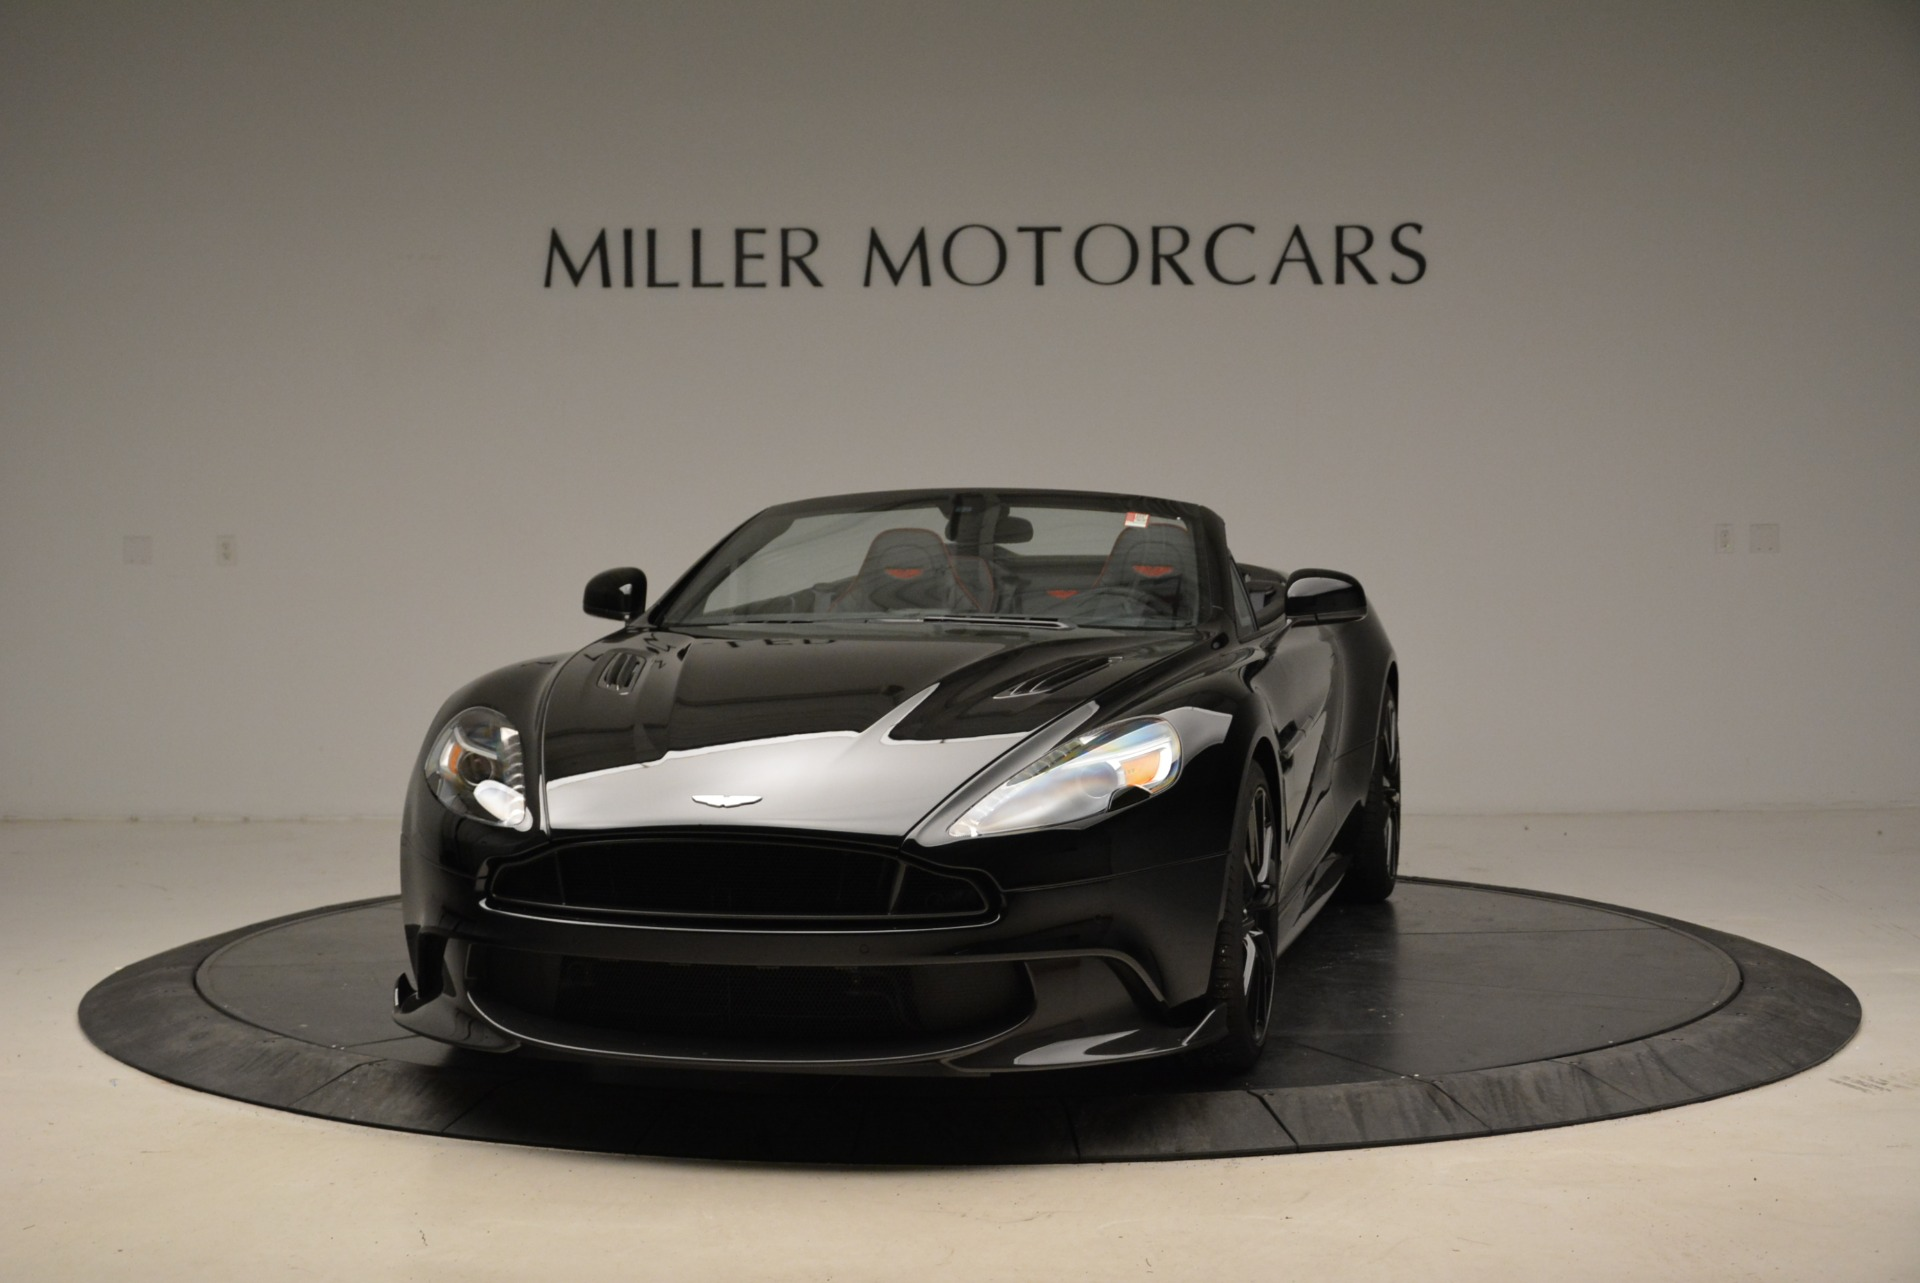 Used 2018 Aston Martin Vanquish S Convertible for sale Sold at McLaren Greenwich in Greenwich CT 06830 1